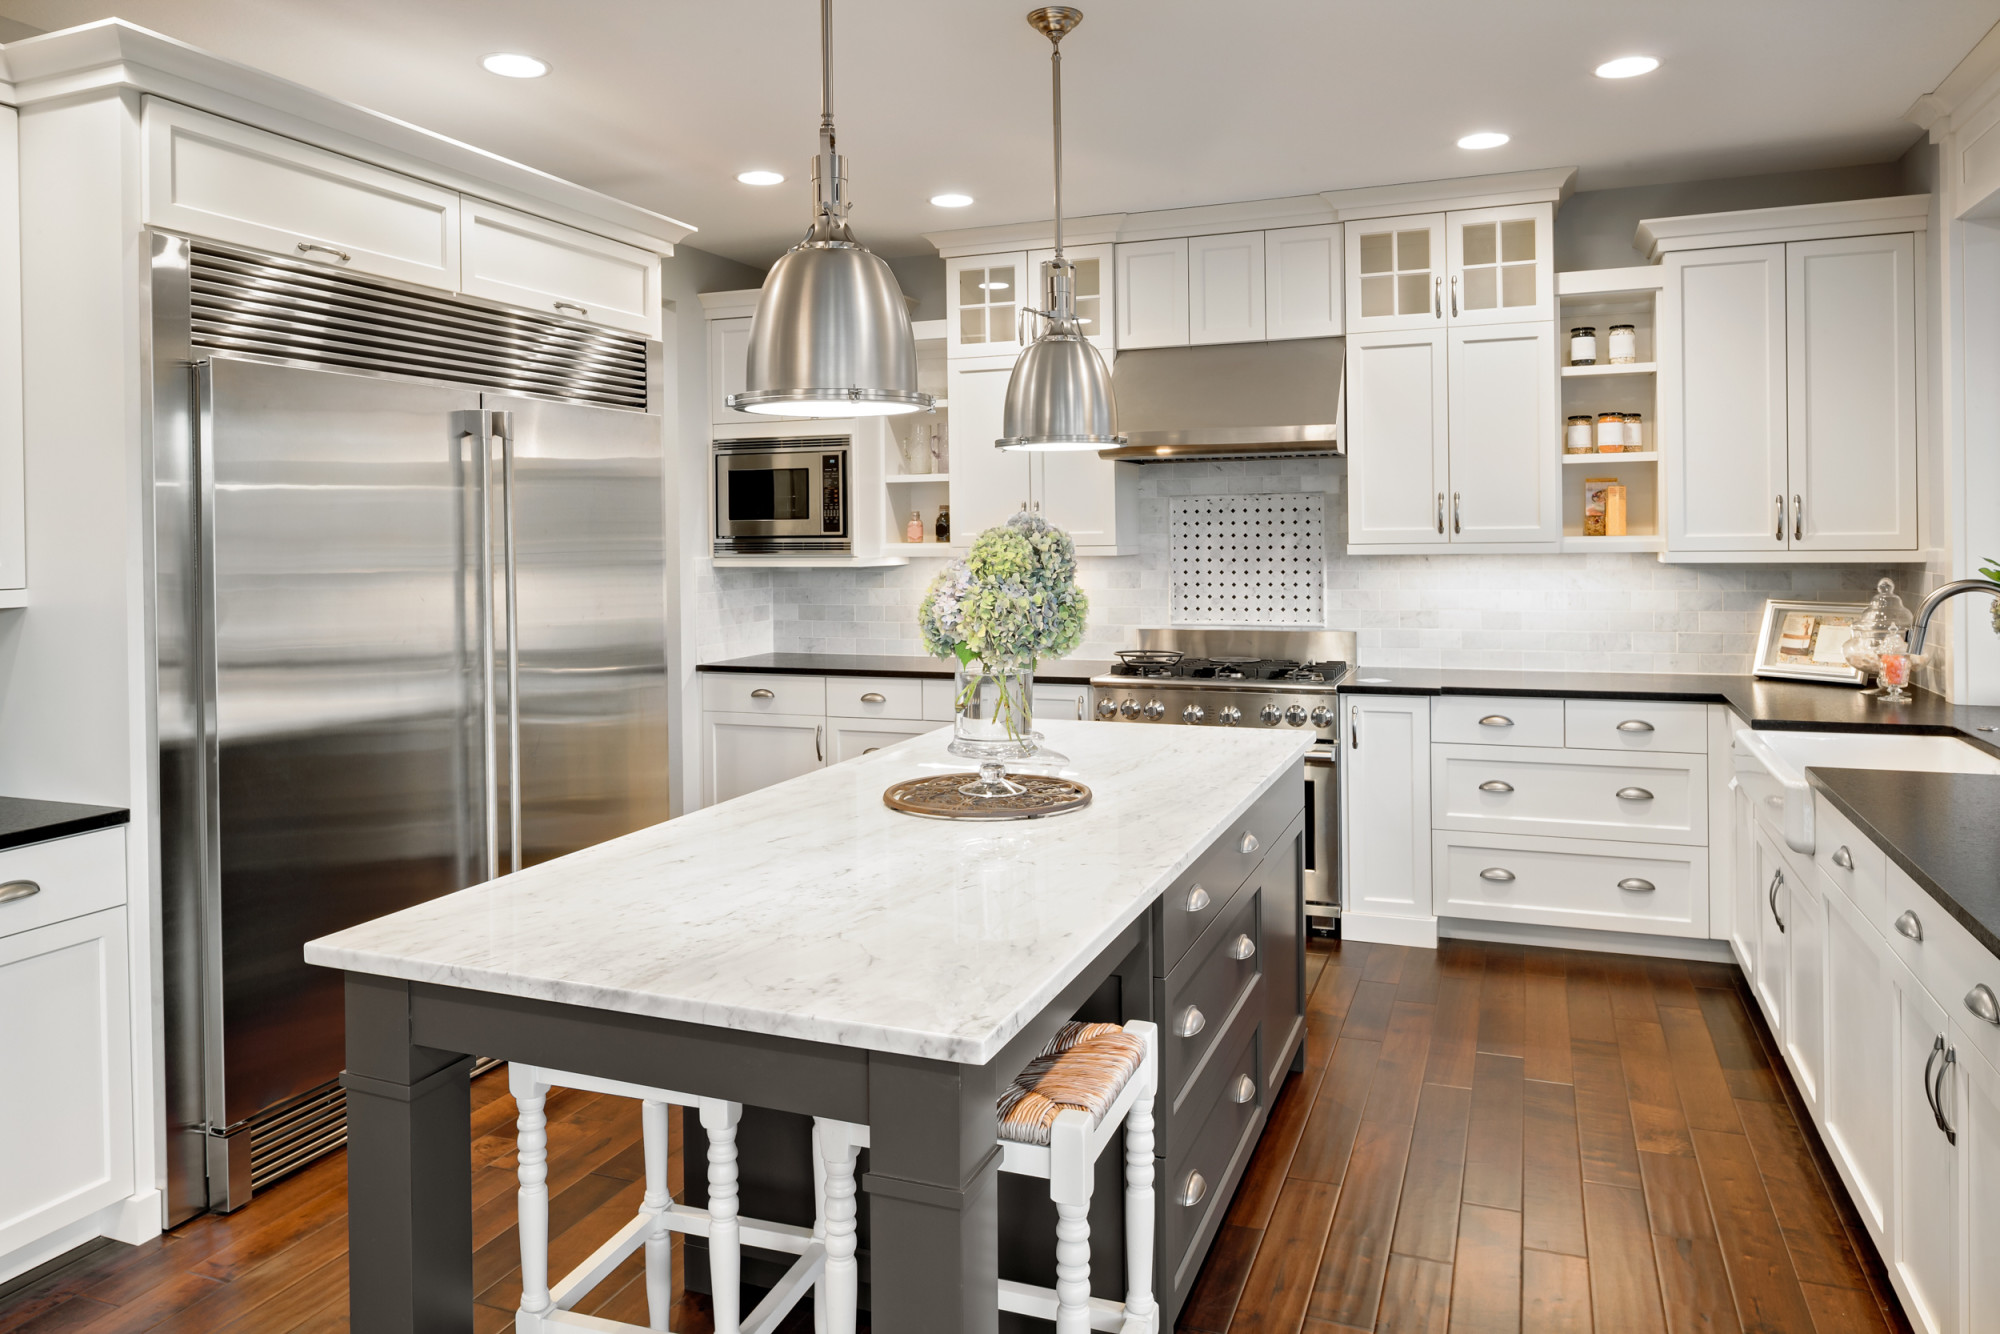 Tips on How to Find Affordable Kitchen Cabinets for Your Home